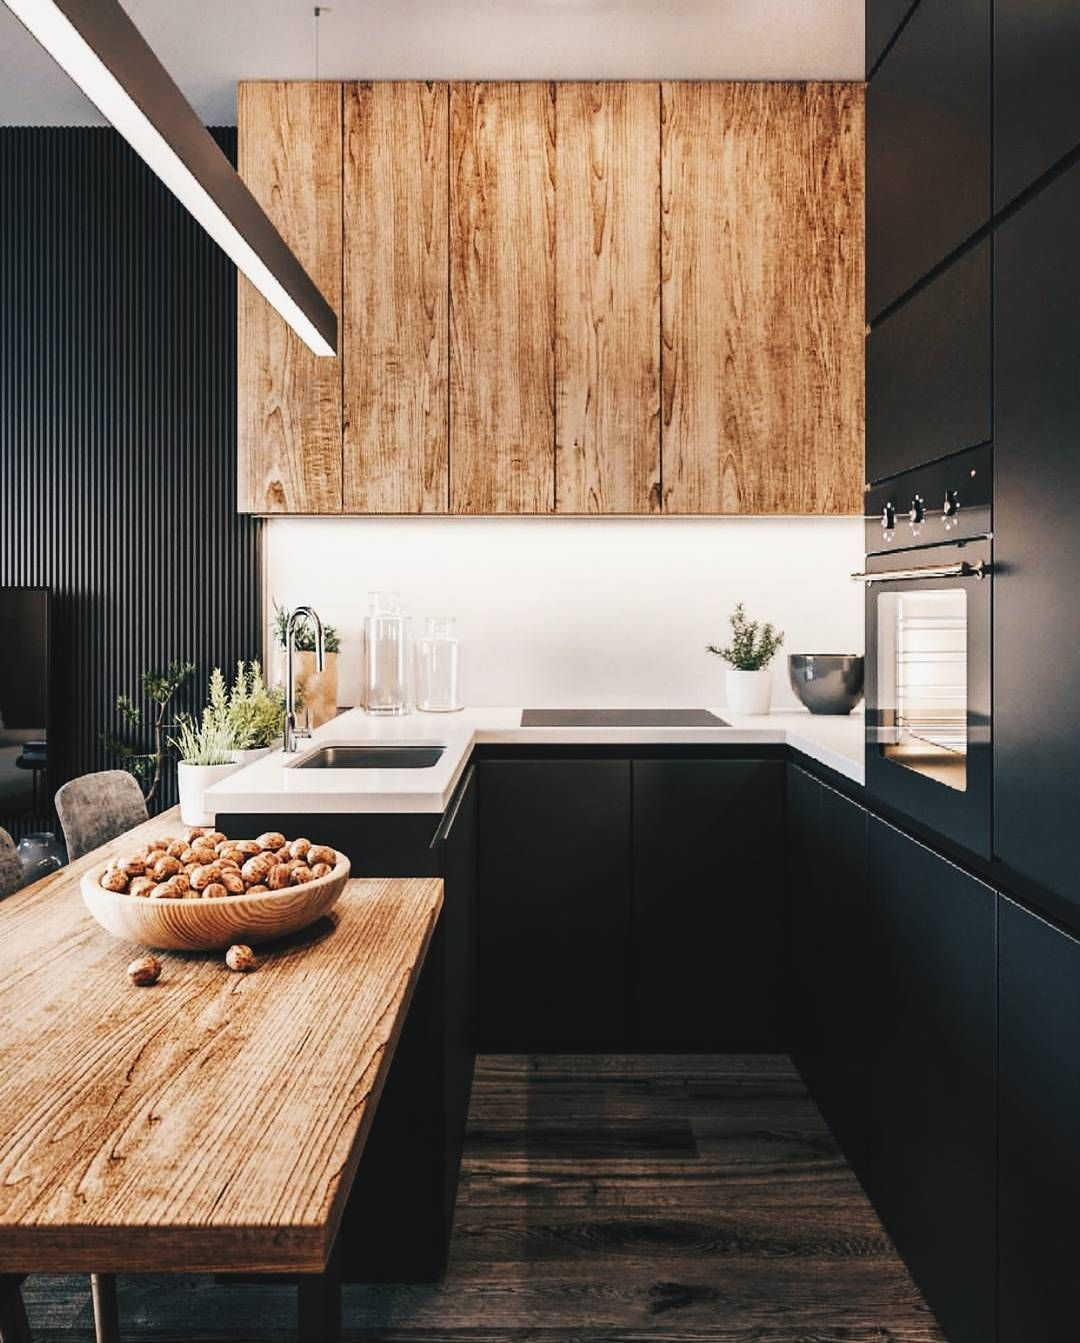 Black and wood is the perfect combination of kitchen